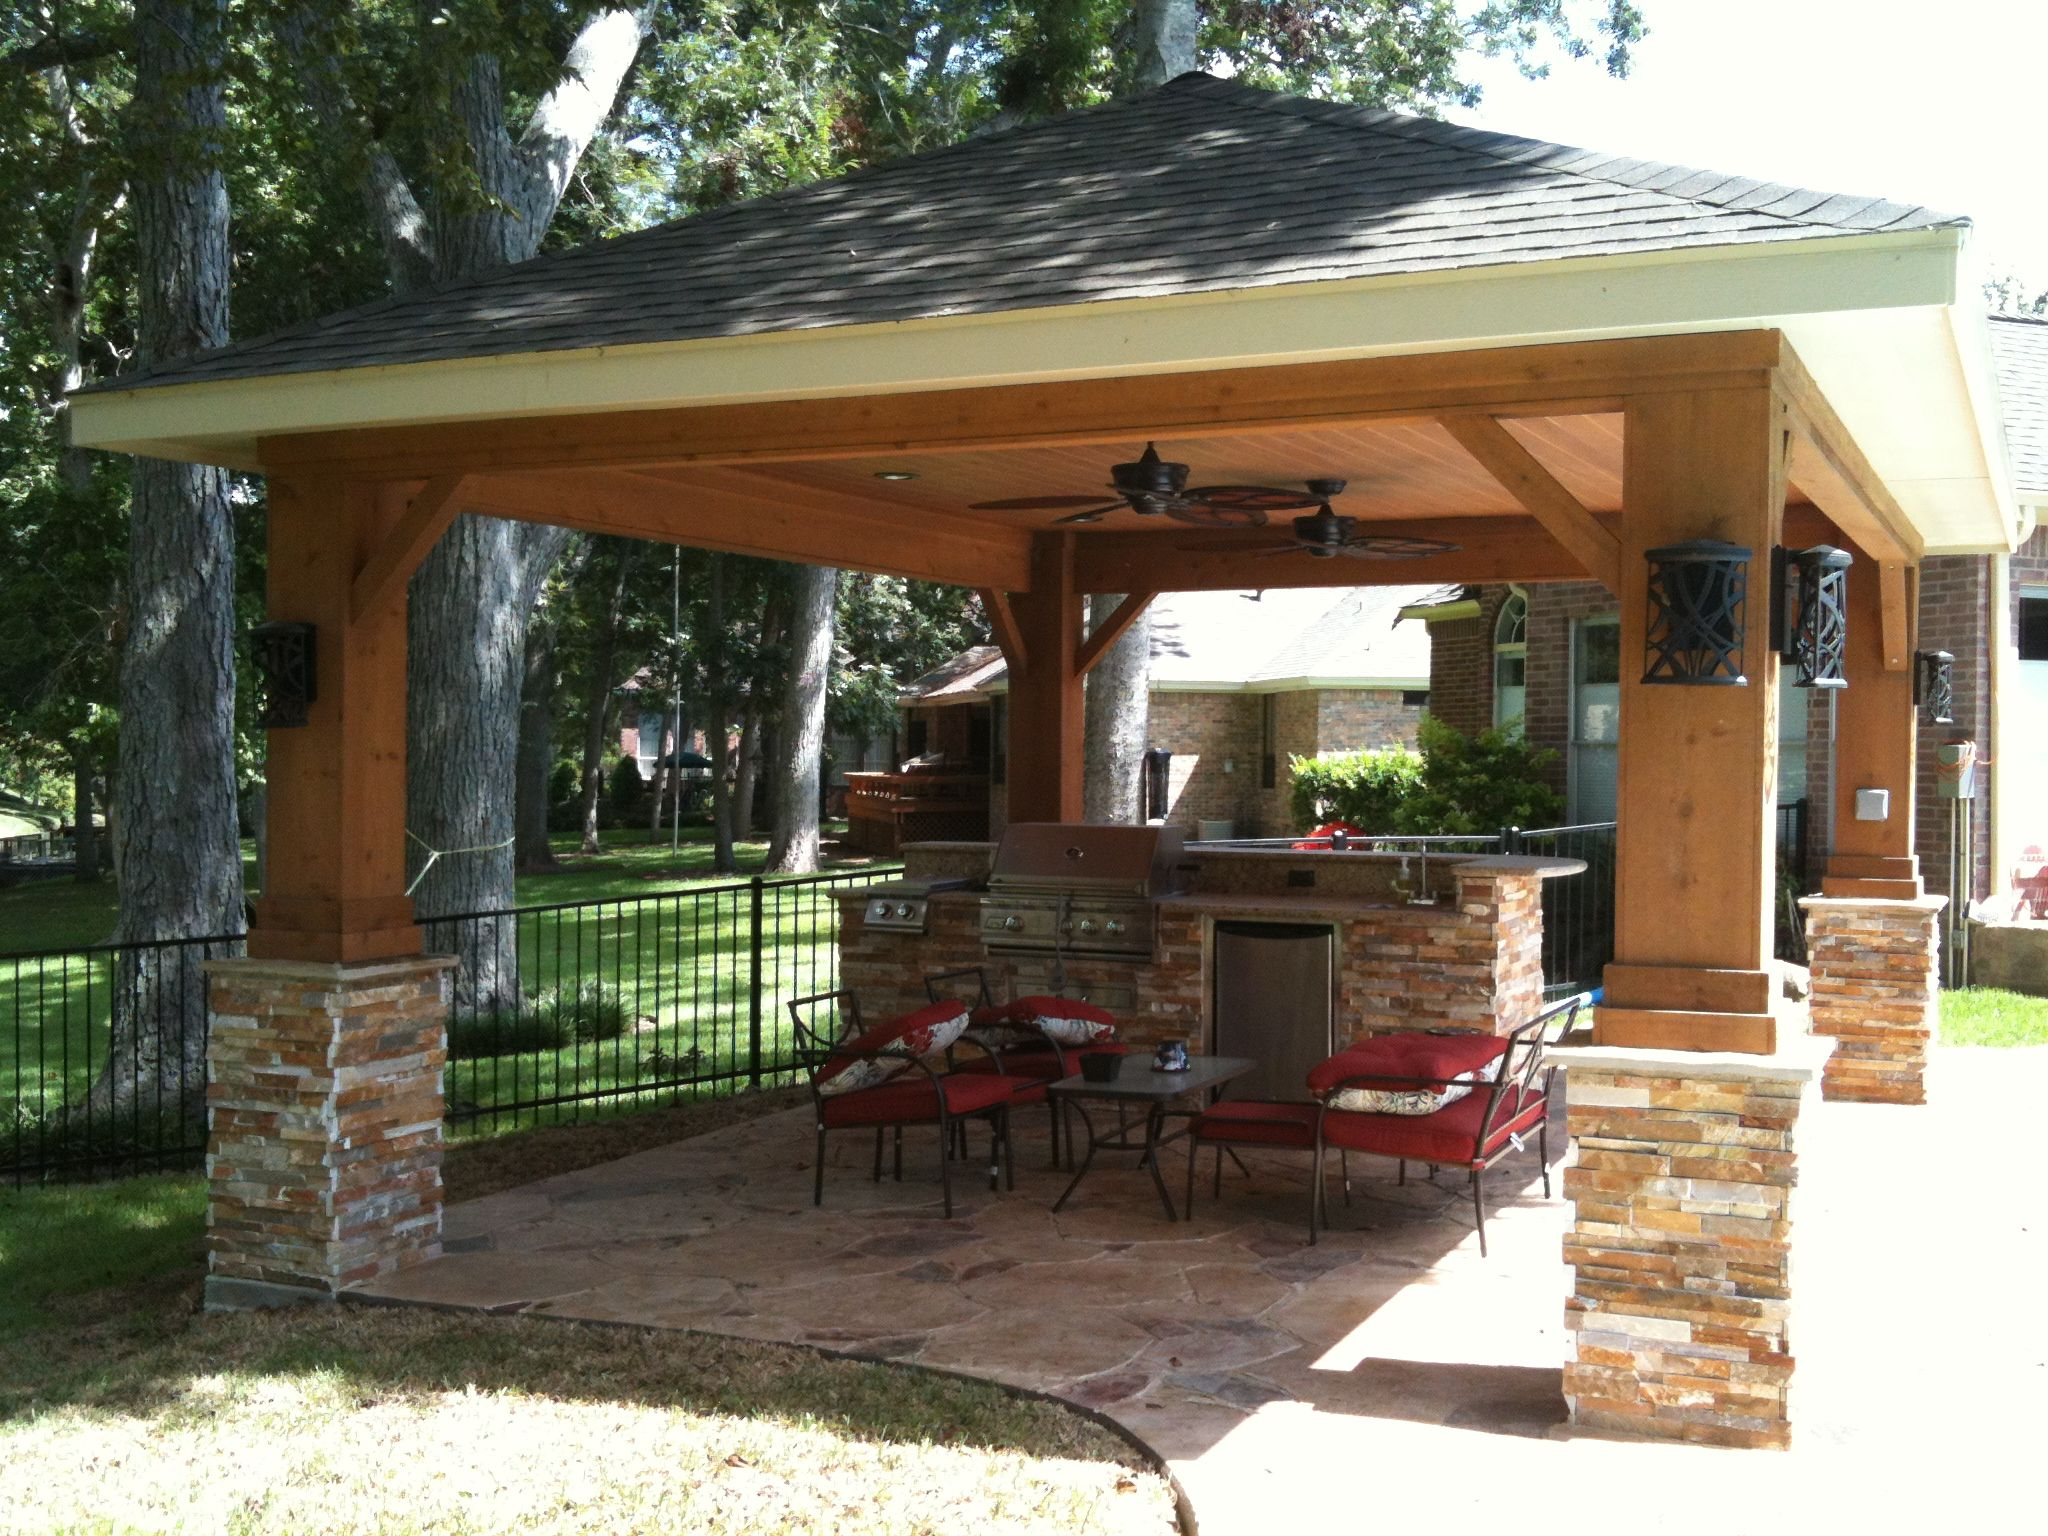 Freestanding Patio Cover featuring stonework and an outdoor kitchen  Outdoor spaces  Patio